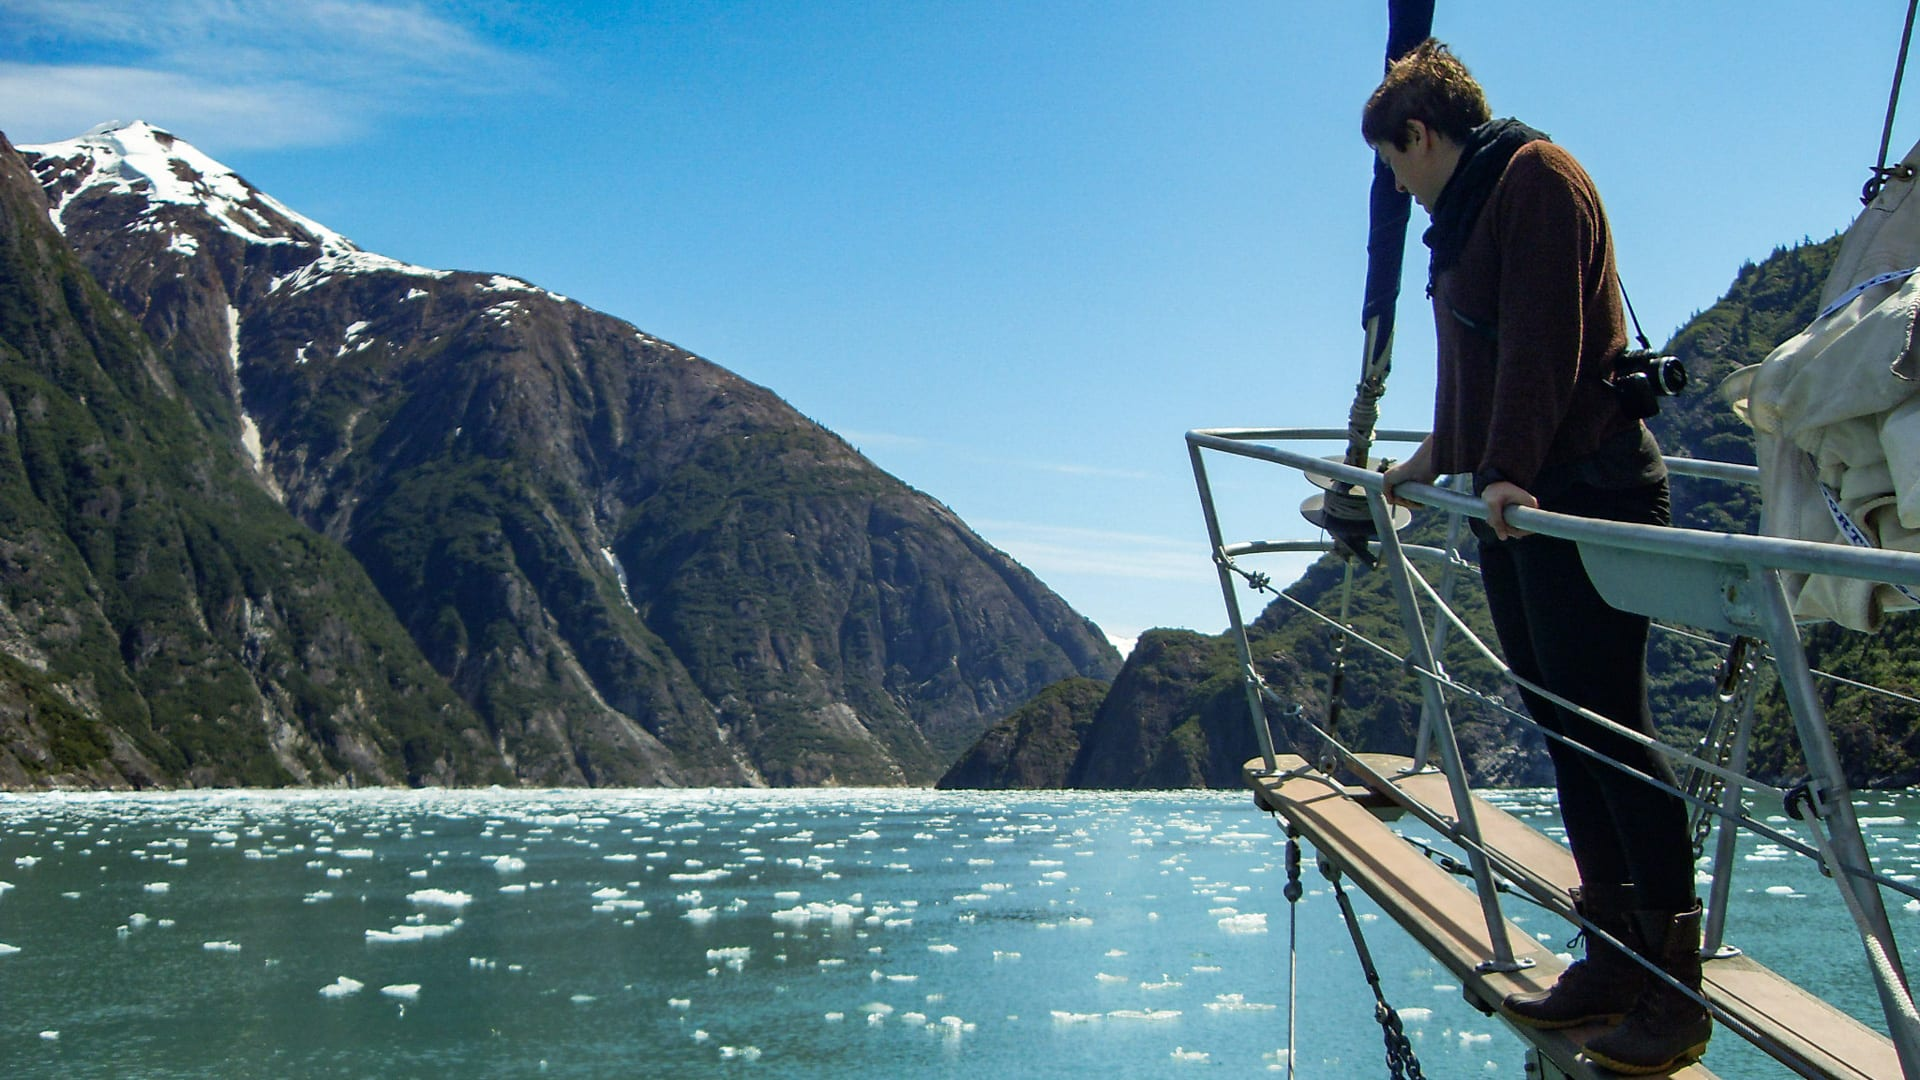 Aria Finkelstein's experiences at sea, here gliding amid a fjords of Southern Alaska on her family ketch, informed her desire to craft marine policy. (Photo courtesy of Aria Finkelstein)